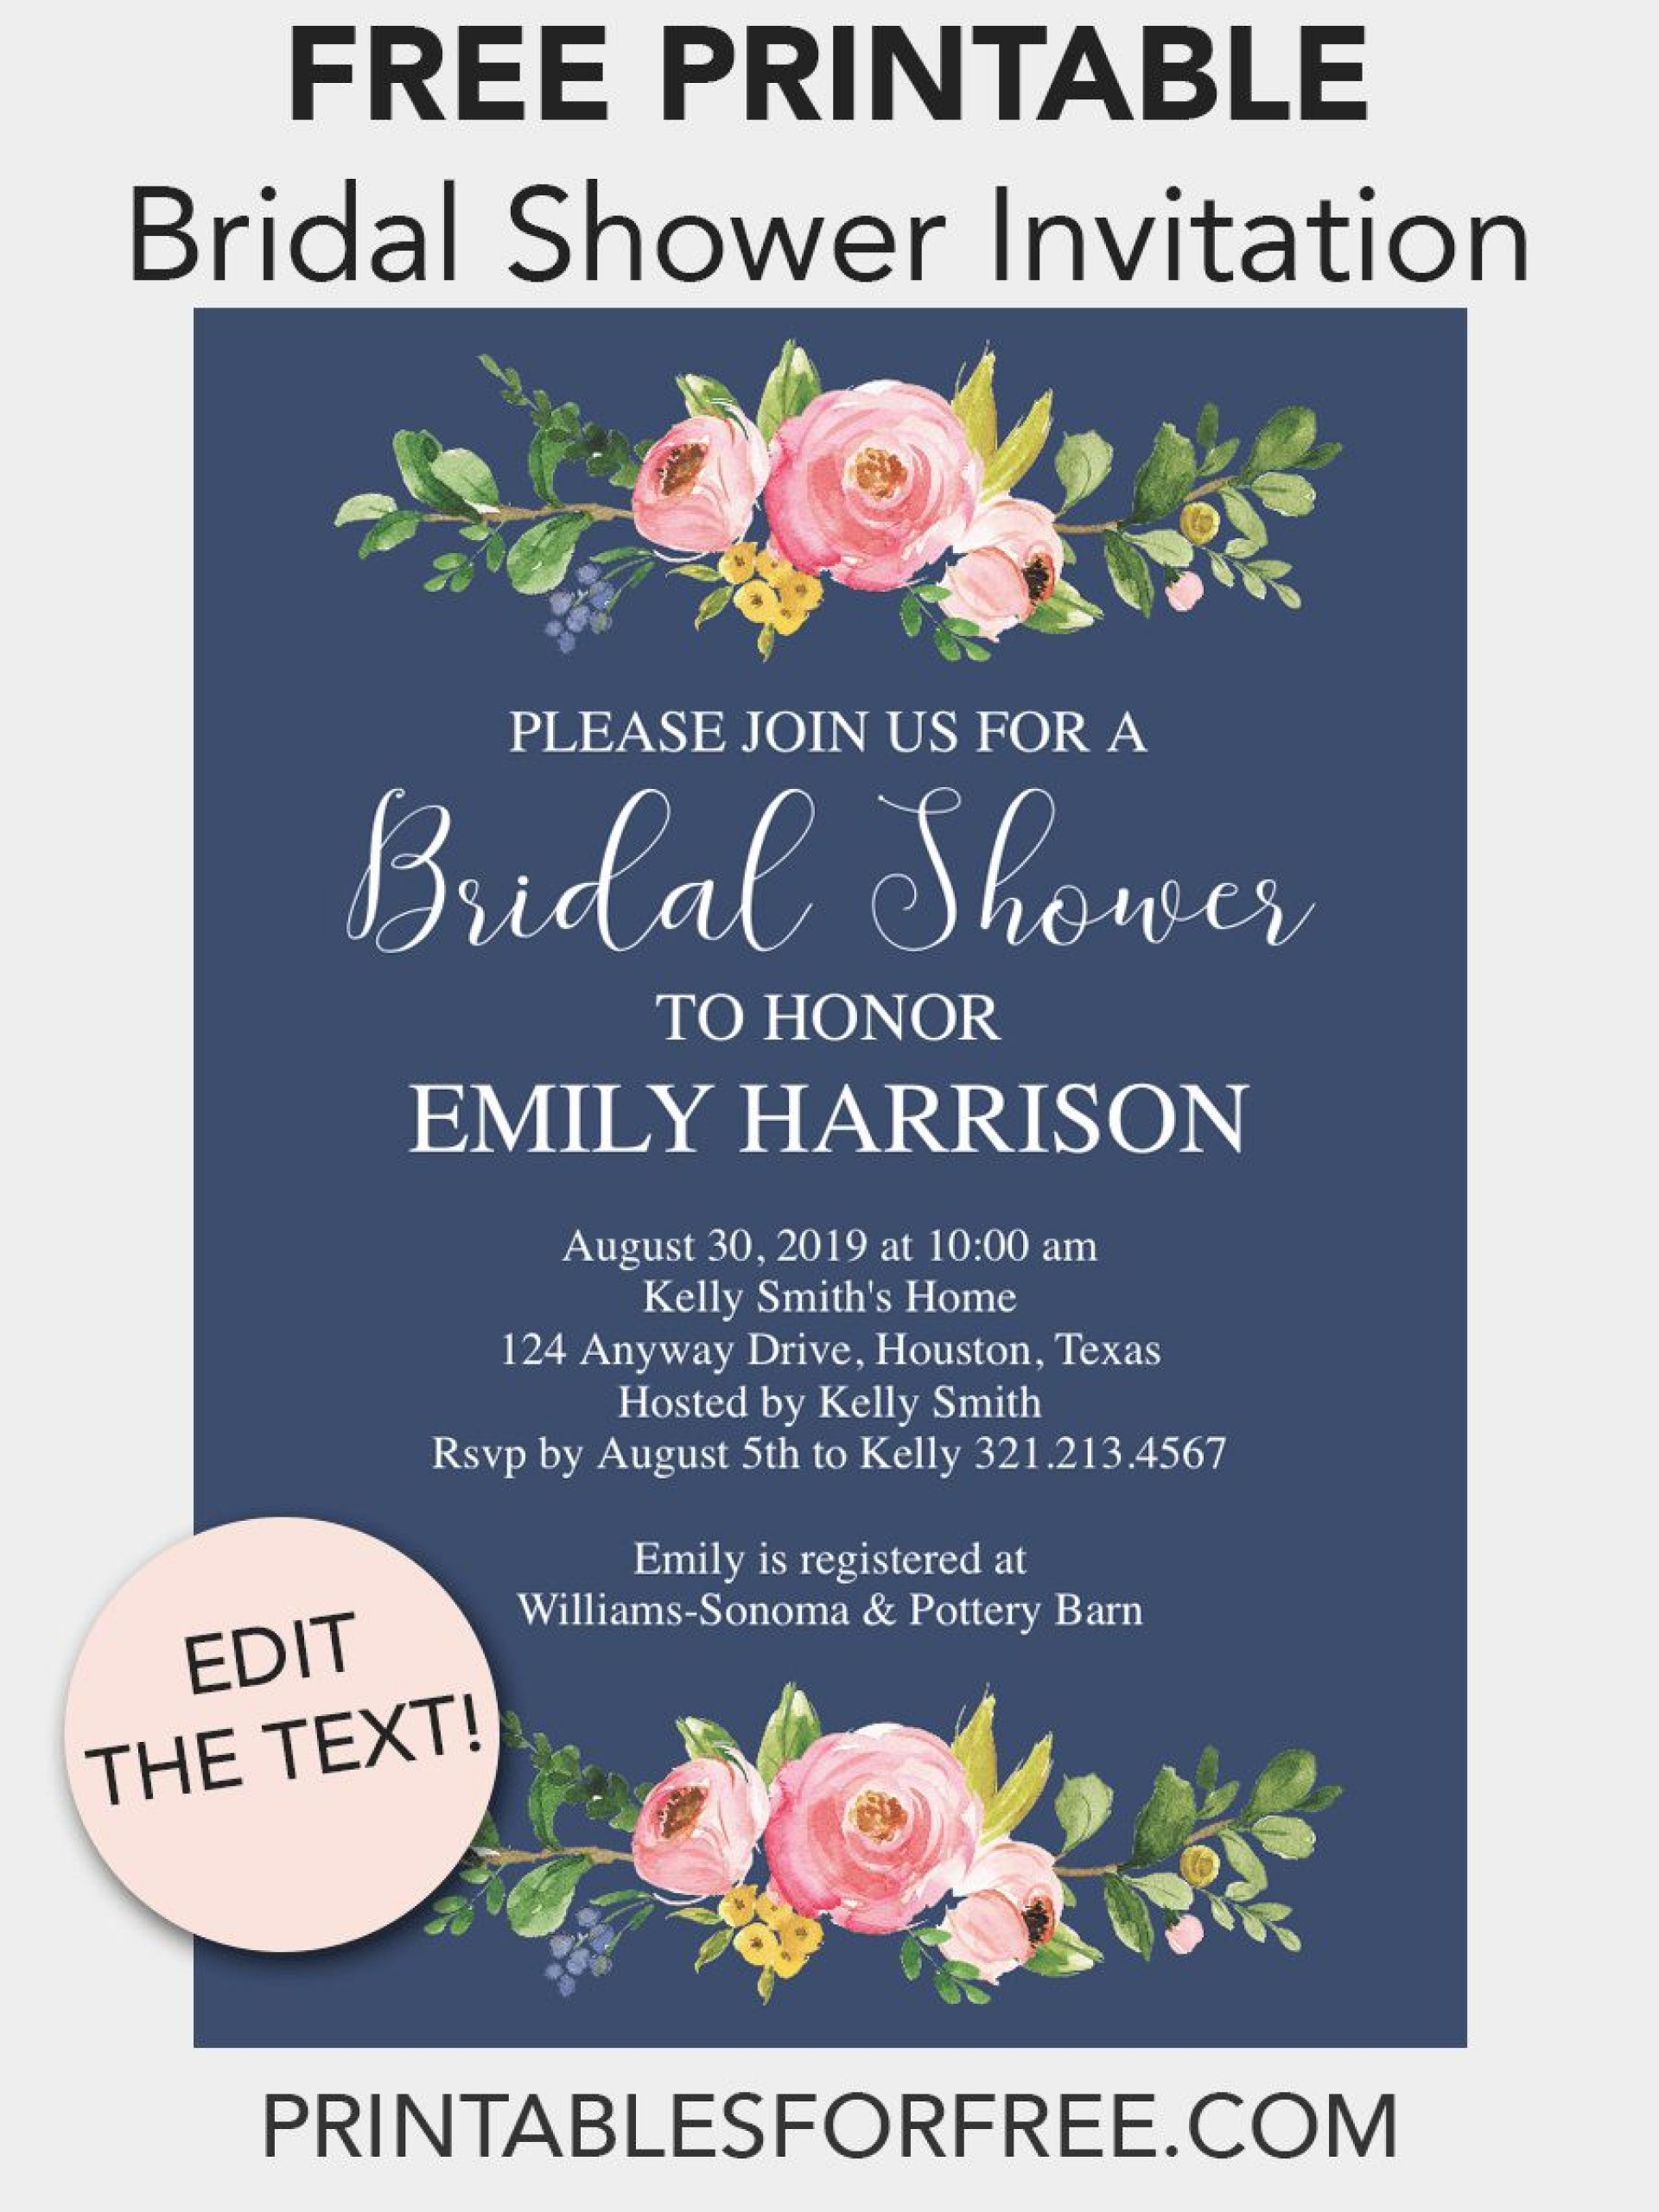 008 Awesome Free Bridal Shower Invite Template High Def  Templates Invitation To Print Online Wedding For Microsoft Word1920